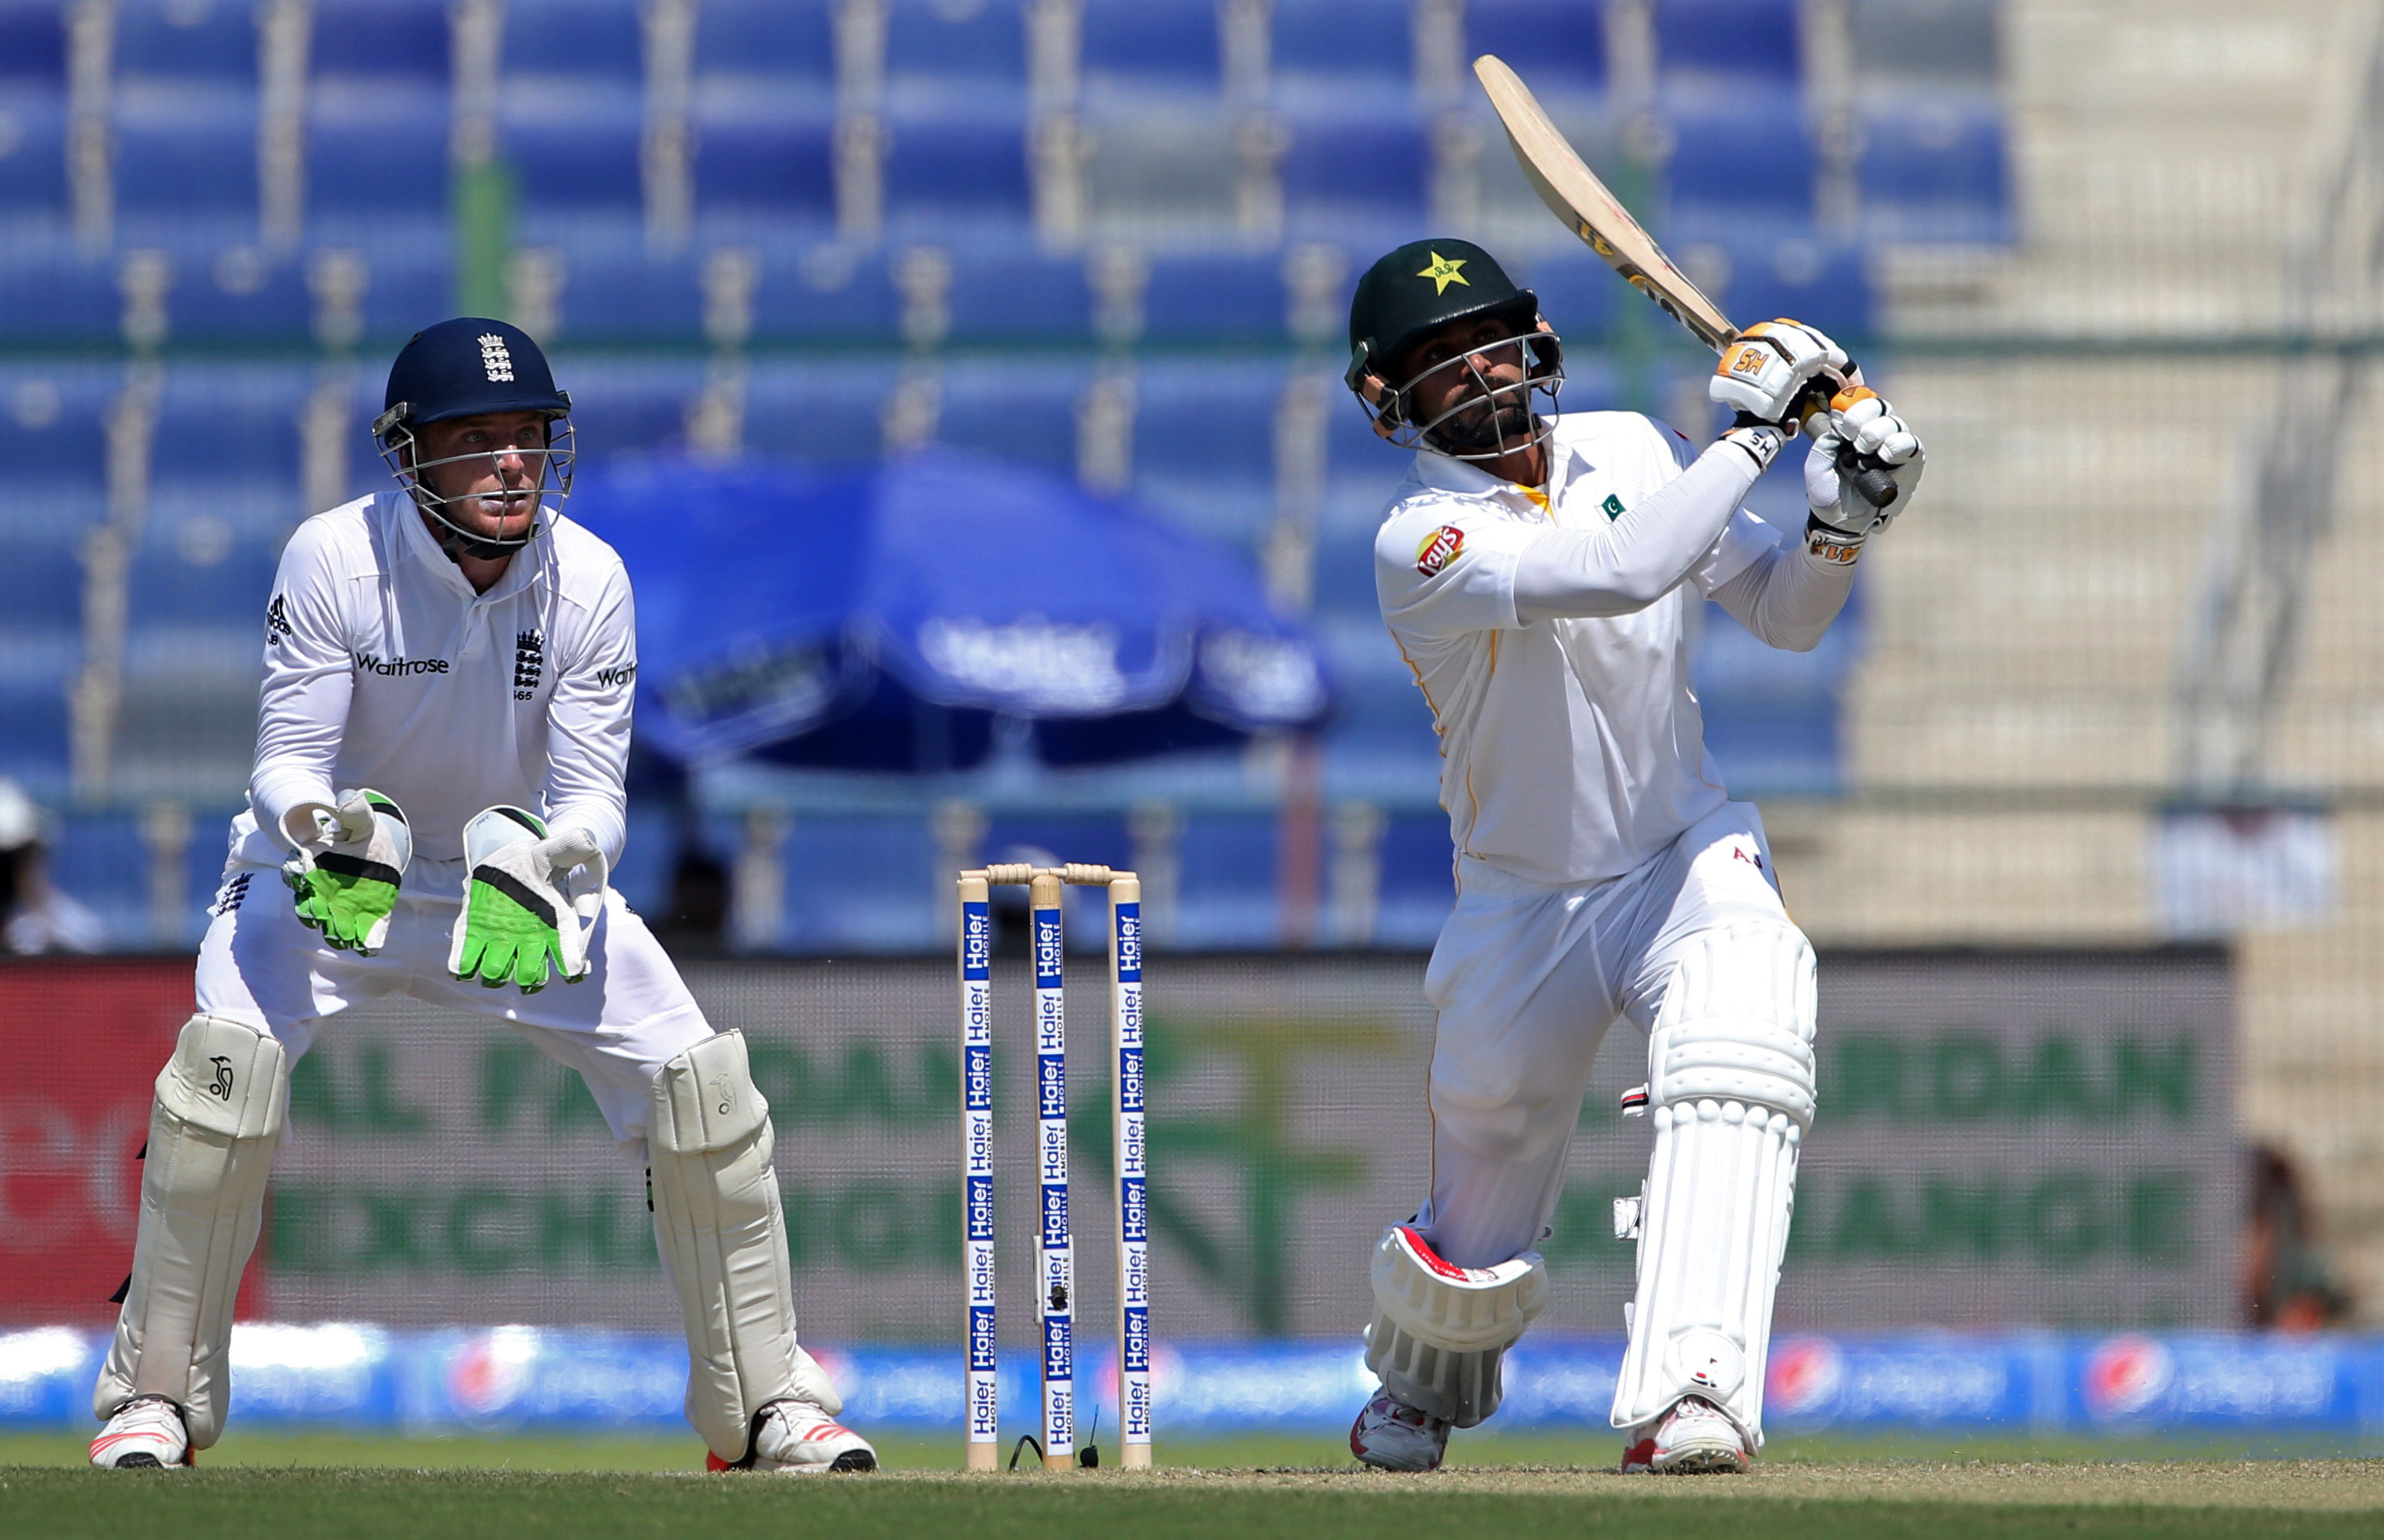 Cricket - Pakistan v England - First Test - Zayed Cricket Stadium, Abu Dhabi, United Arab Emirates - 13/10/15nPakistan's Mohammad Hafeez (R) in action as England's Jos Buttler looks onnAction Images via Reuters / Jason O'BriennLivepic